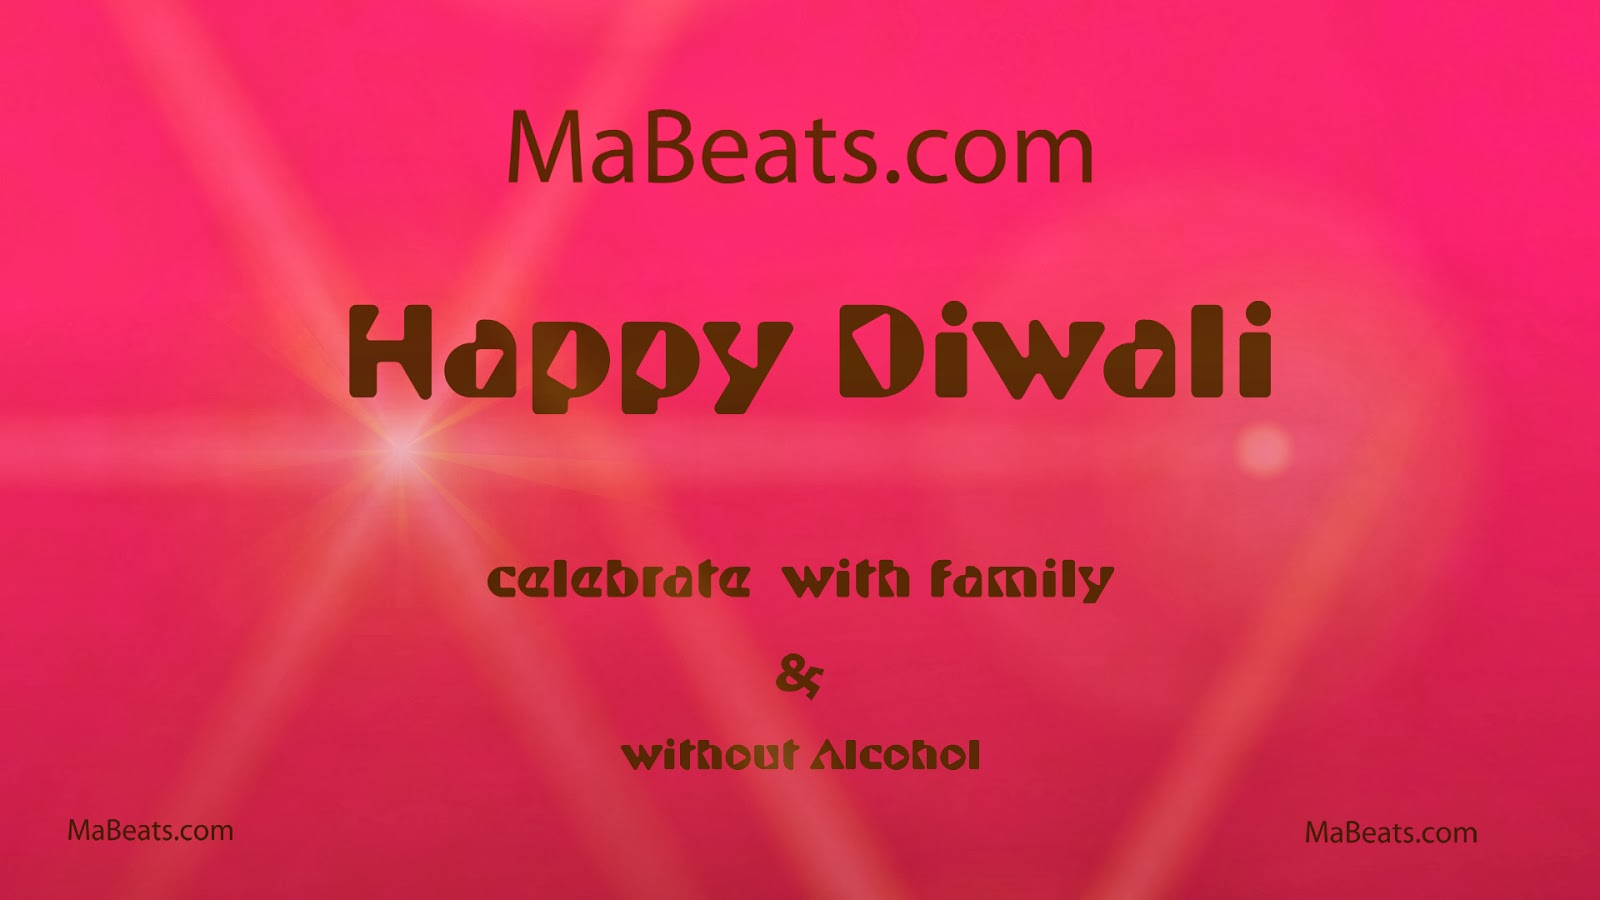 Happy Diwali - celebrate with family and without Alcohol